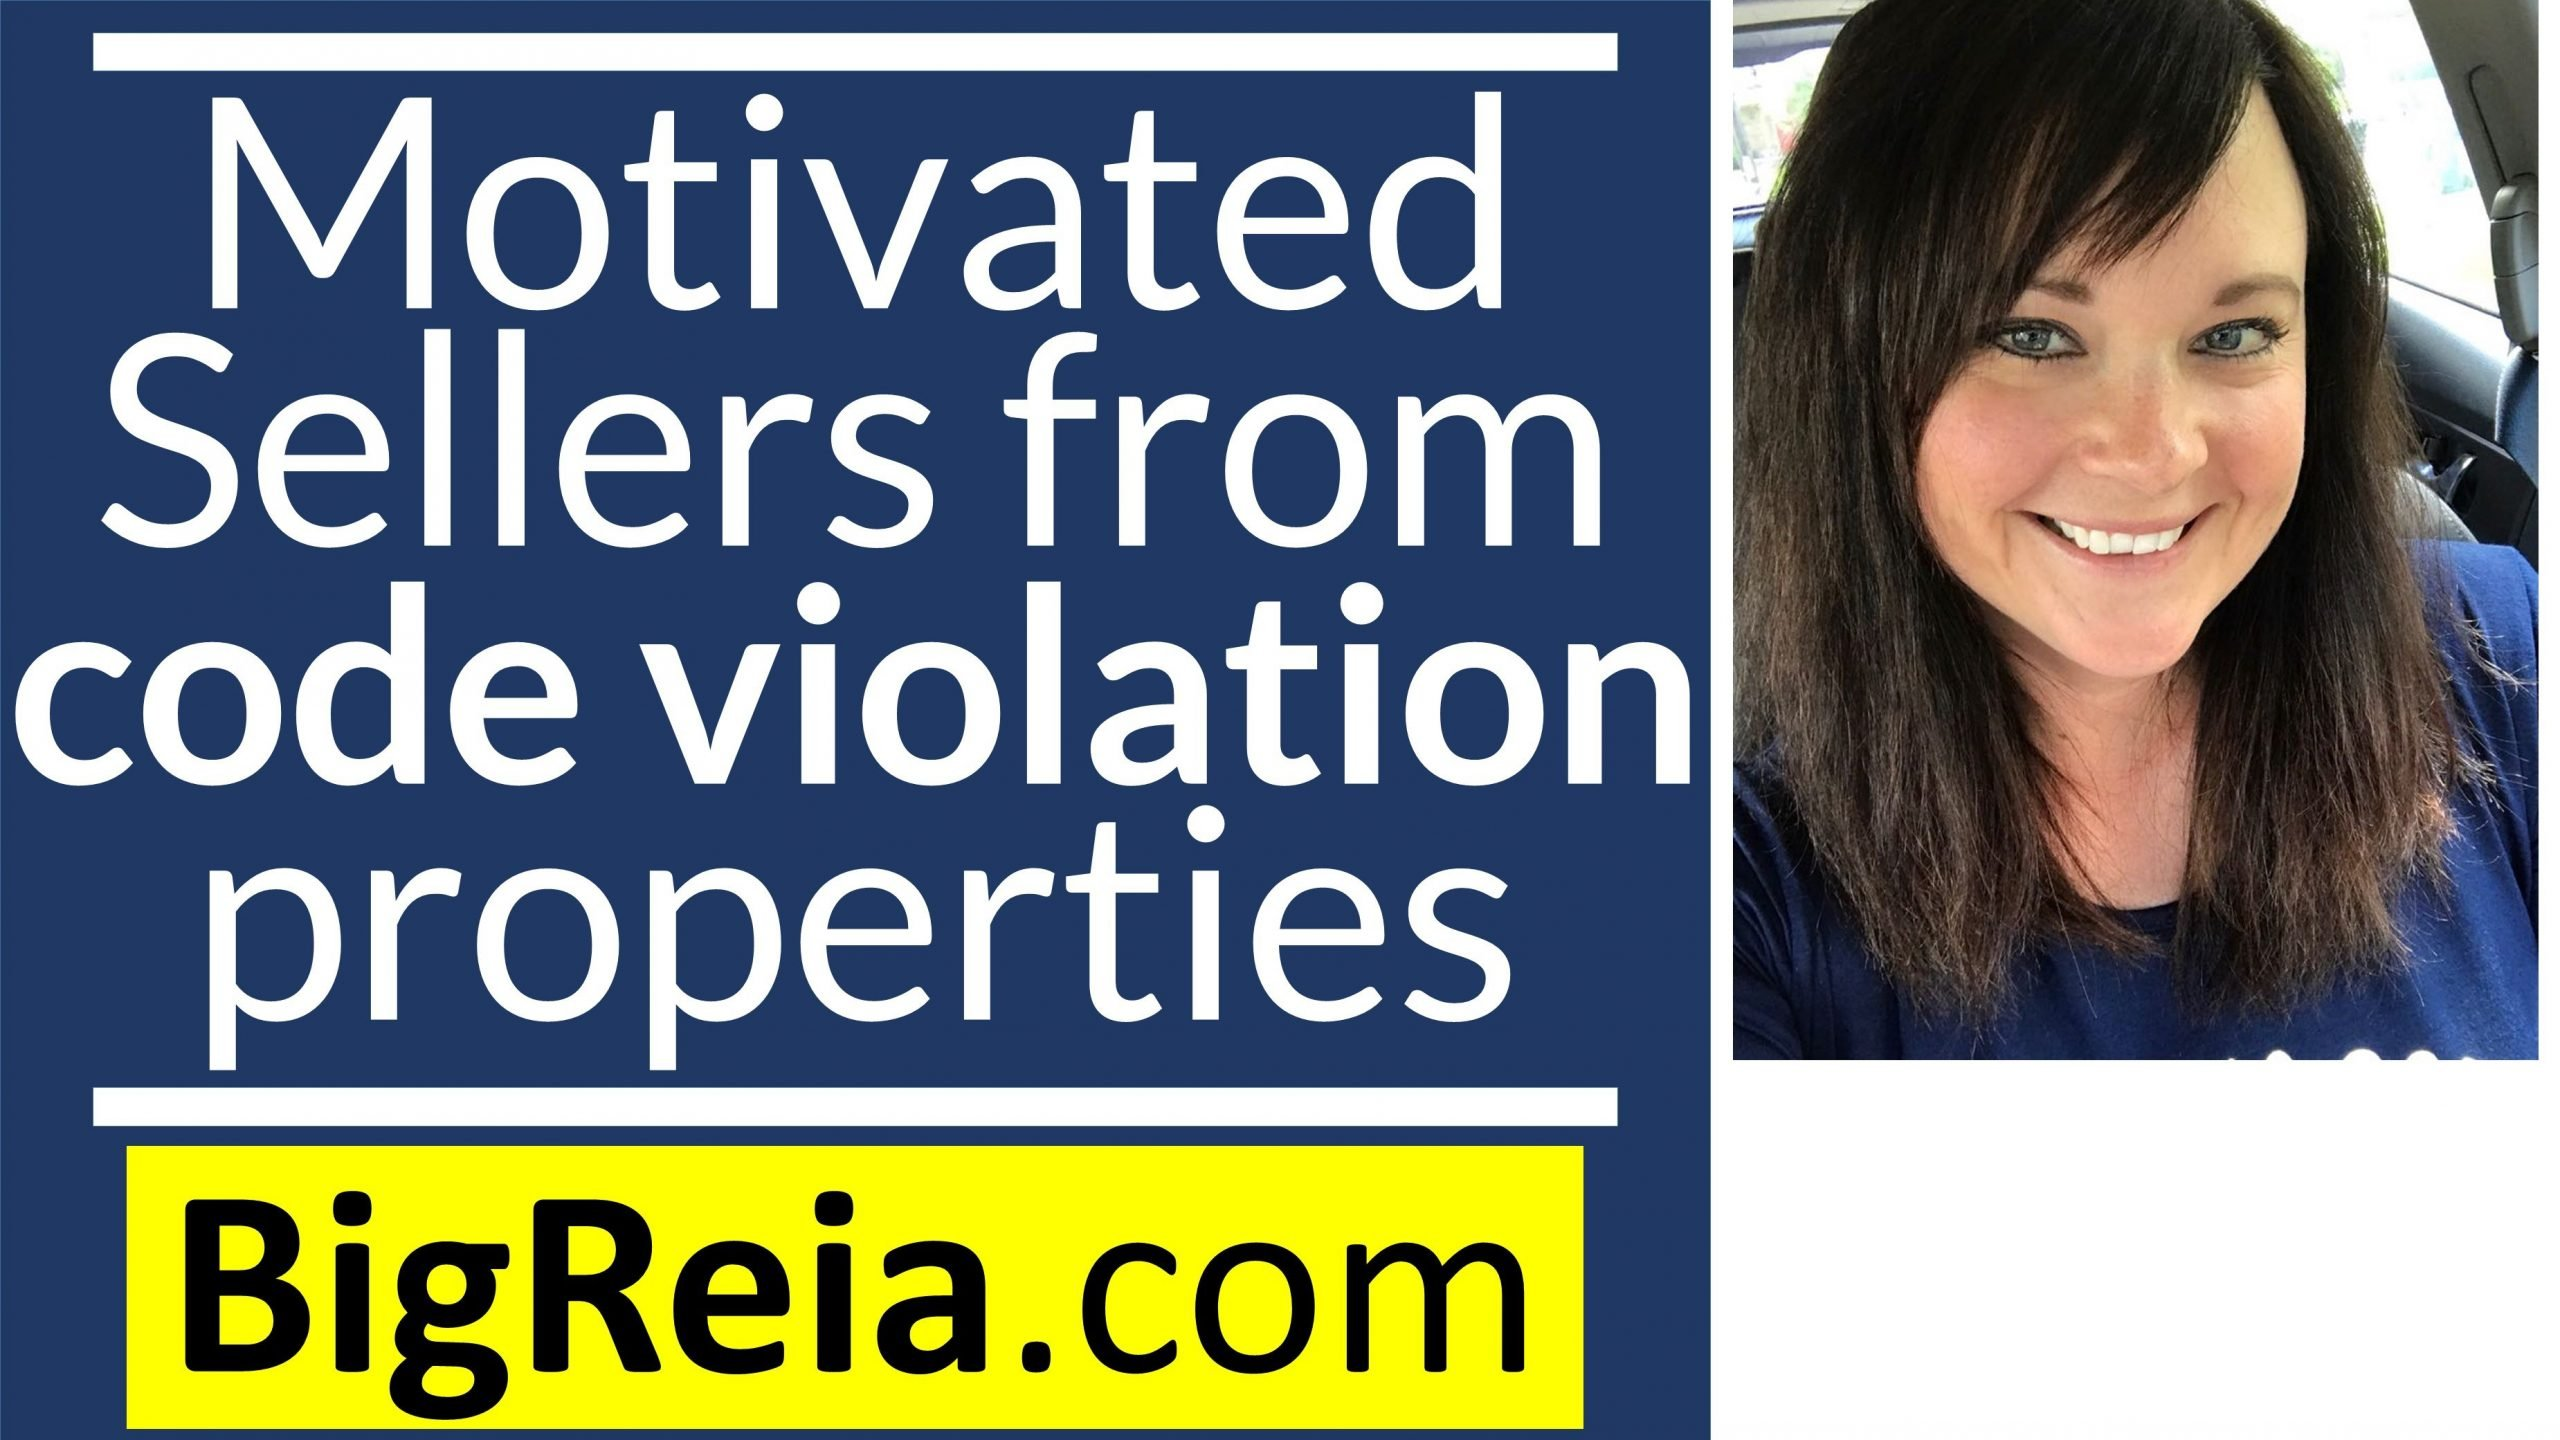 How to find motivated seller leads from code violation properties, here are 19 ways.